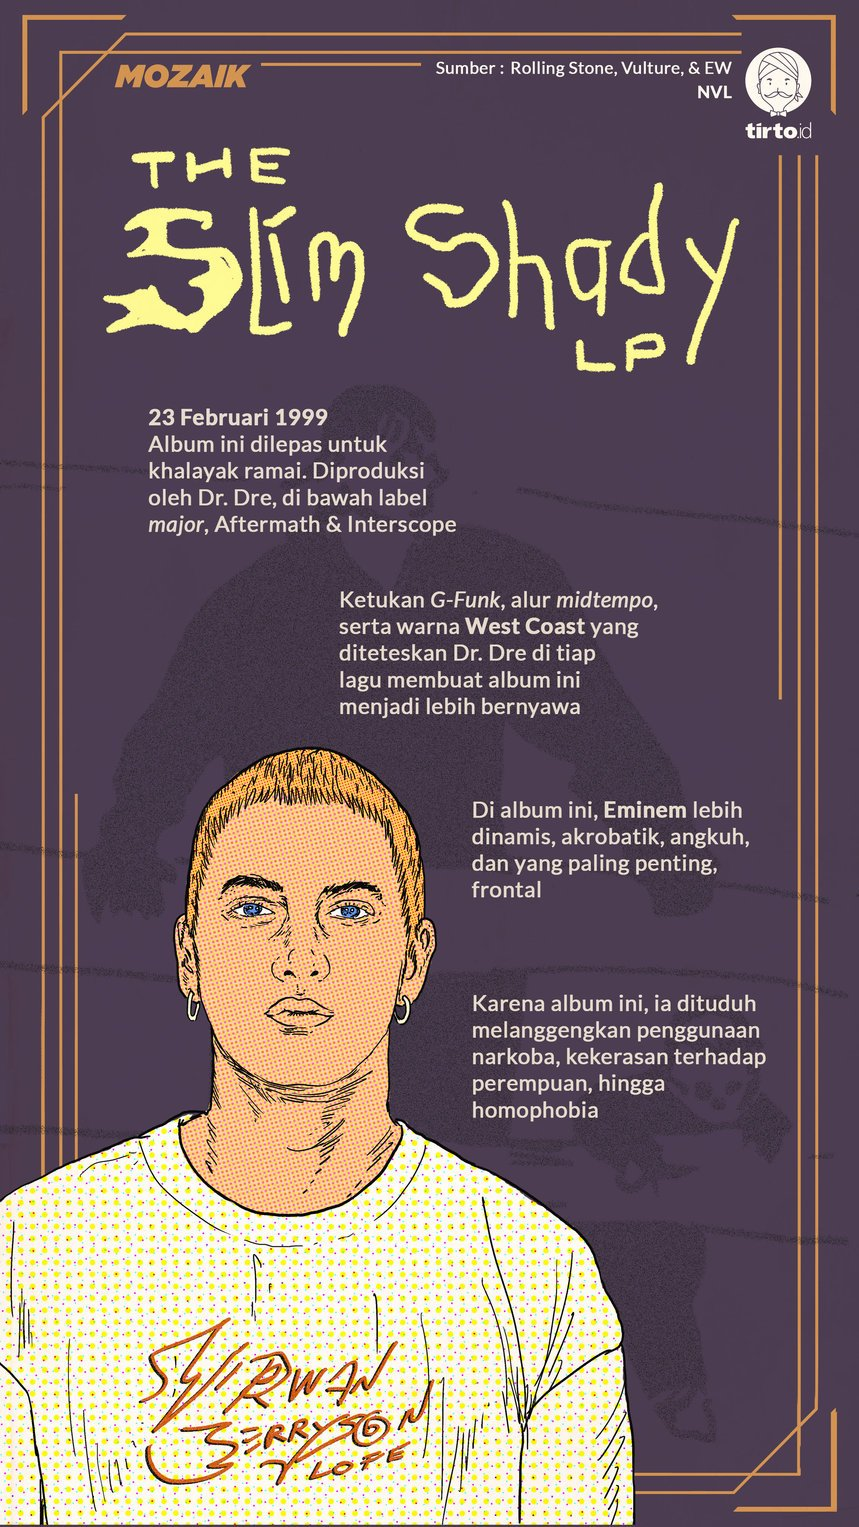 Infografik Mozaik The Slim Shady LP